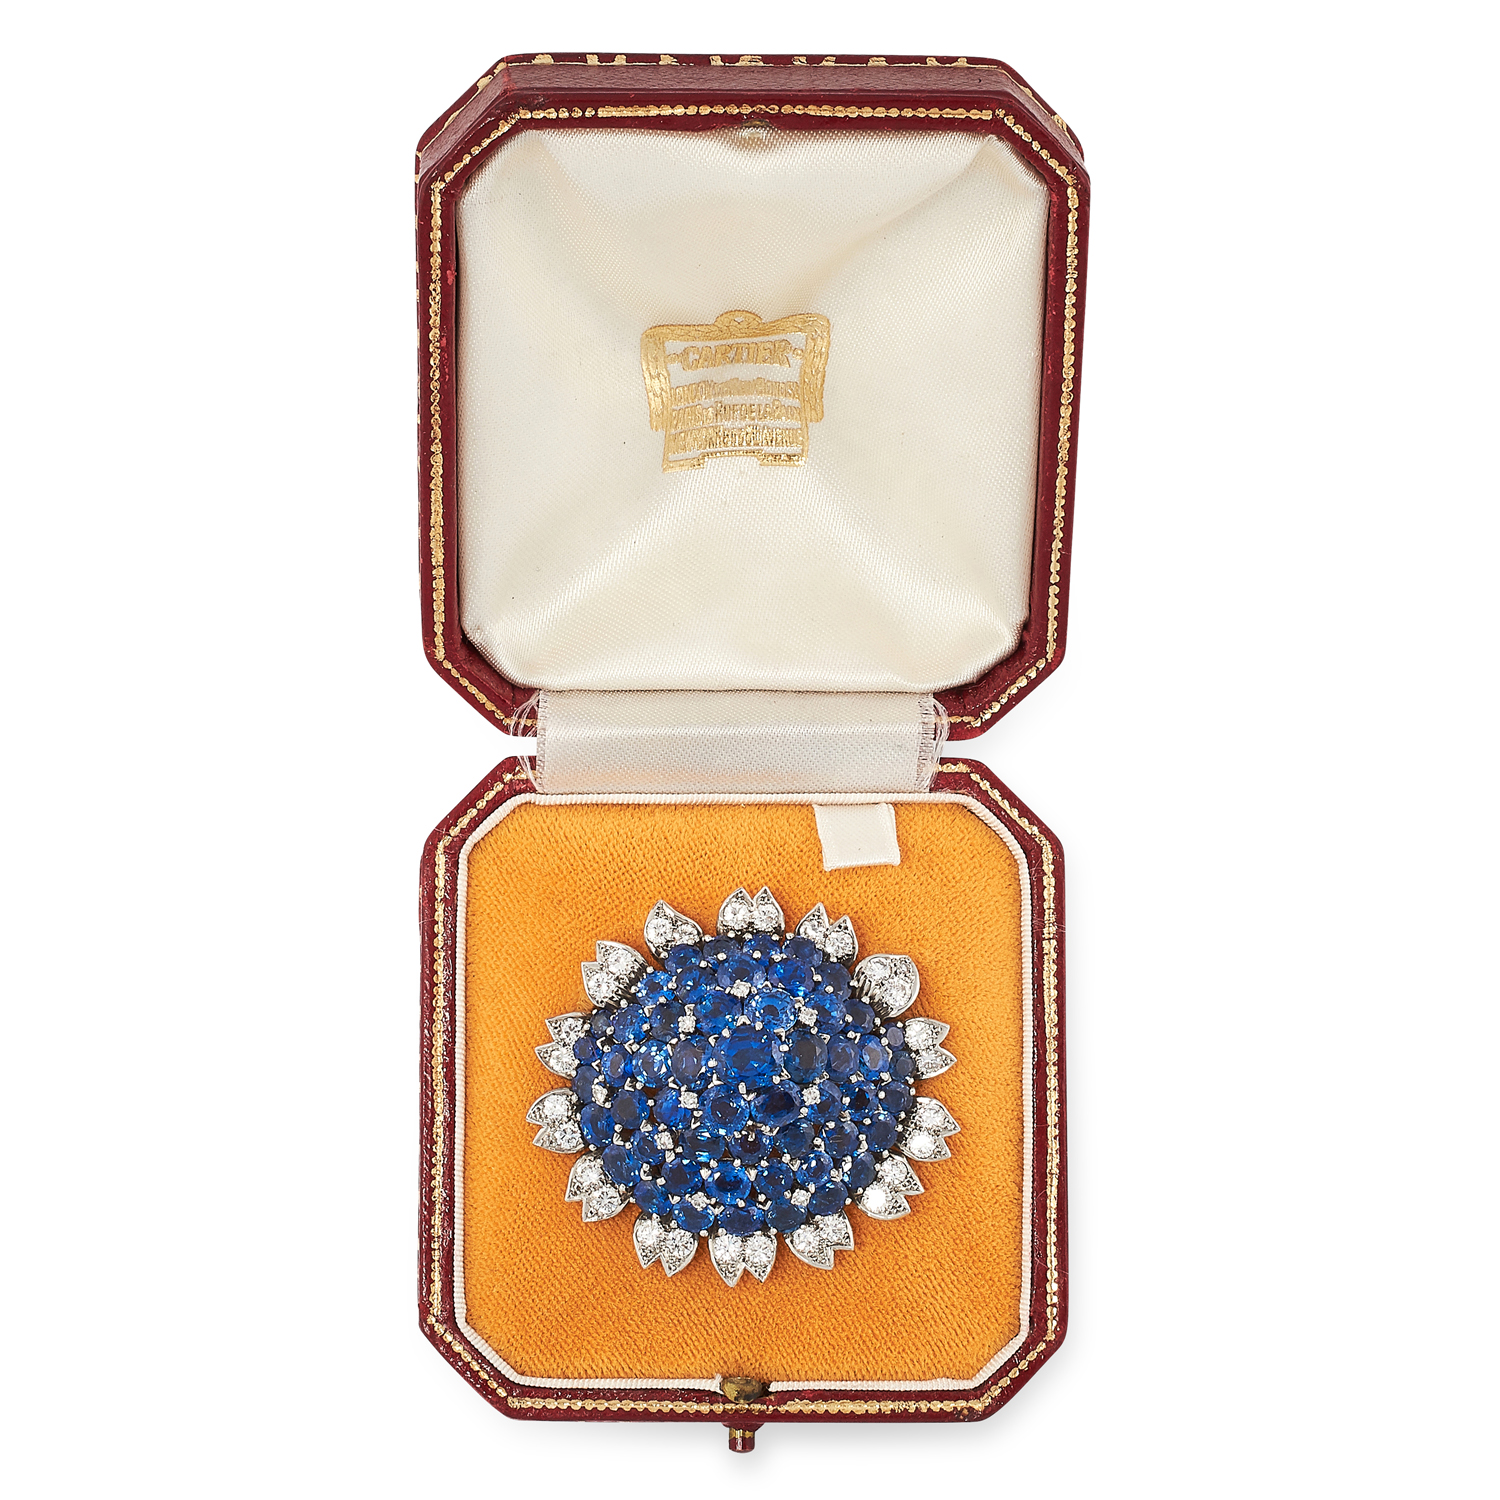 A VINTAGE SAPPHIRE AND DIAMOND BROOCH, CARTIER CIRCA 1960 in 18ct white gold, set with a cluster - Image 2 of 2